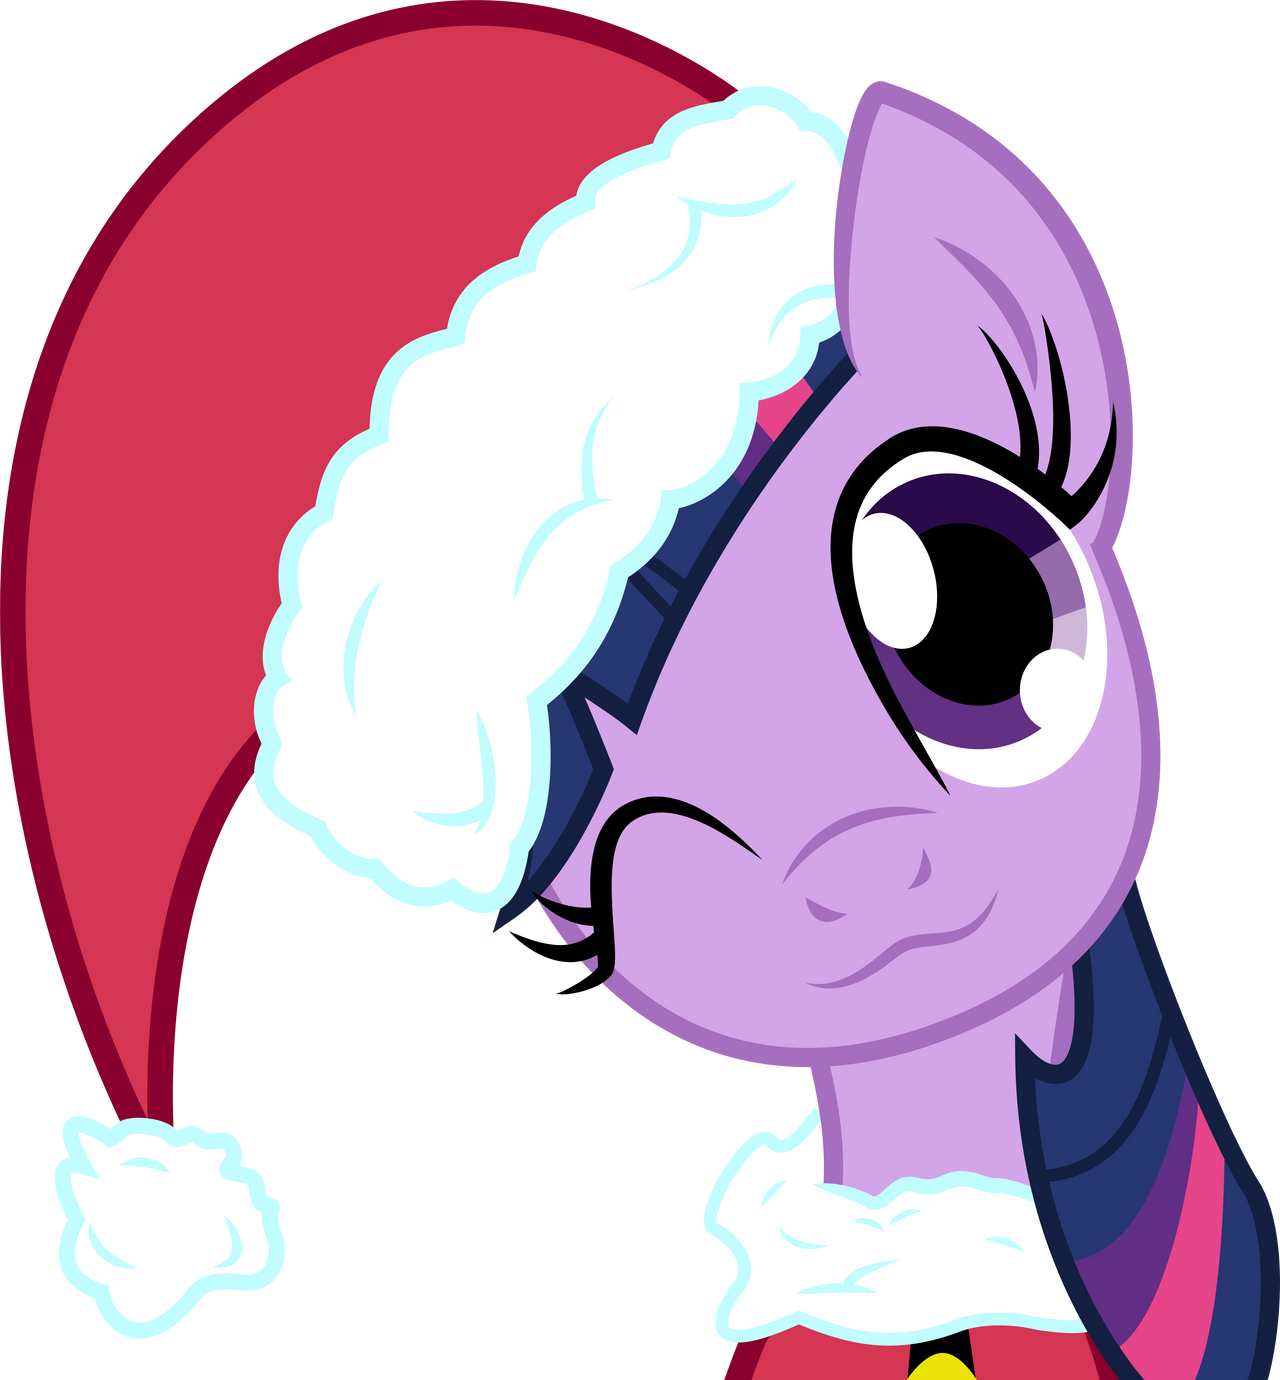 Sparkle Claus by LazyPixel